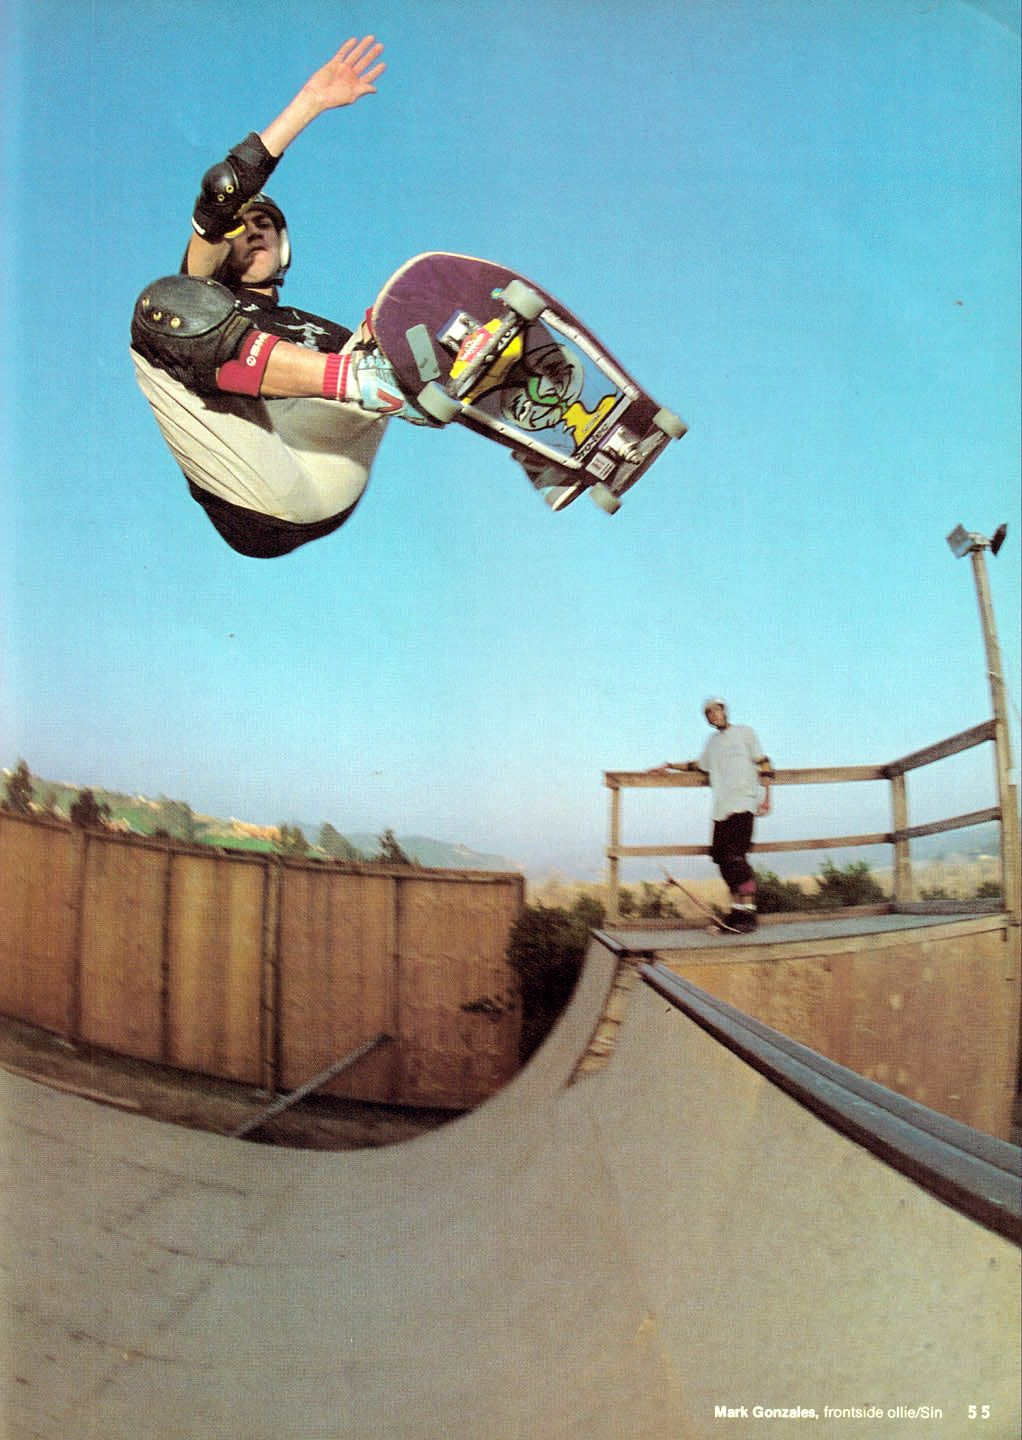 MARK GONZALES Skateboard pictures, Skate photos